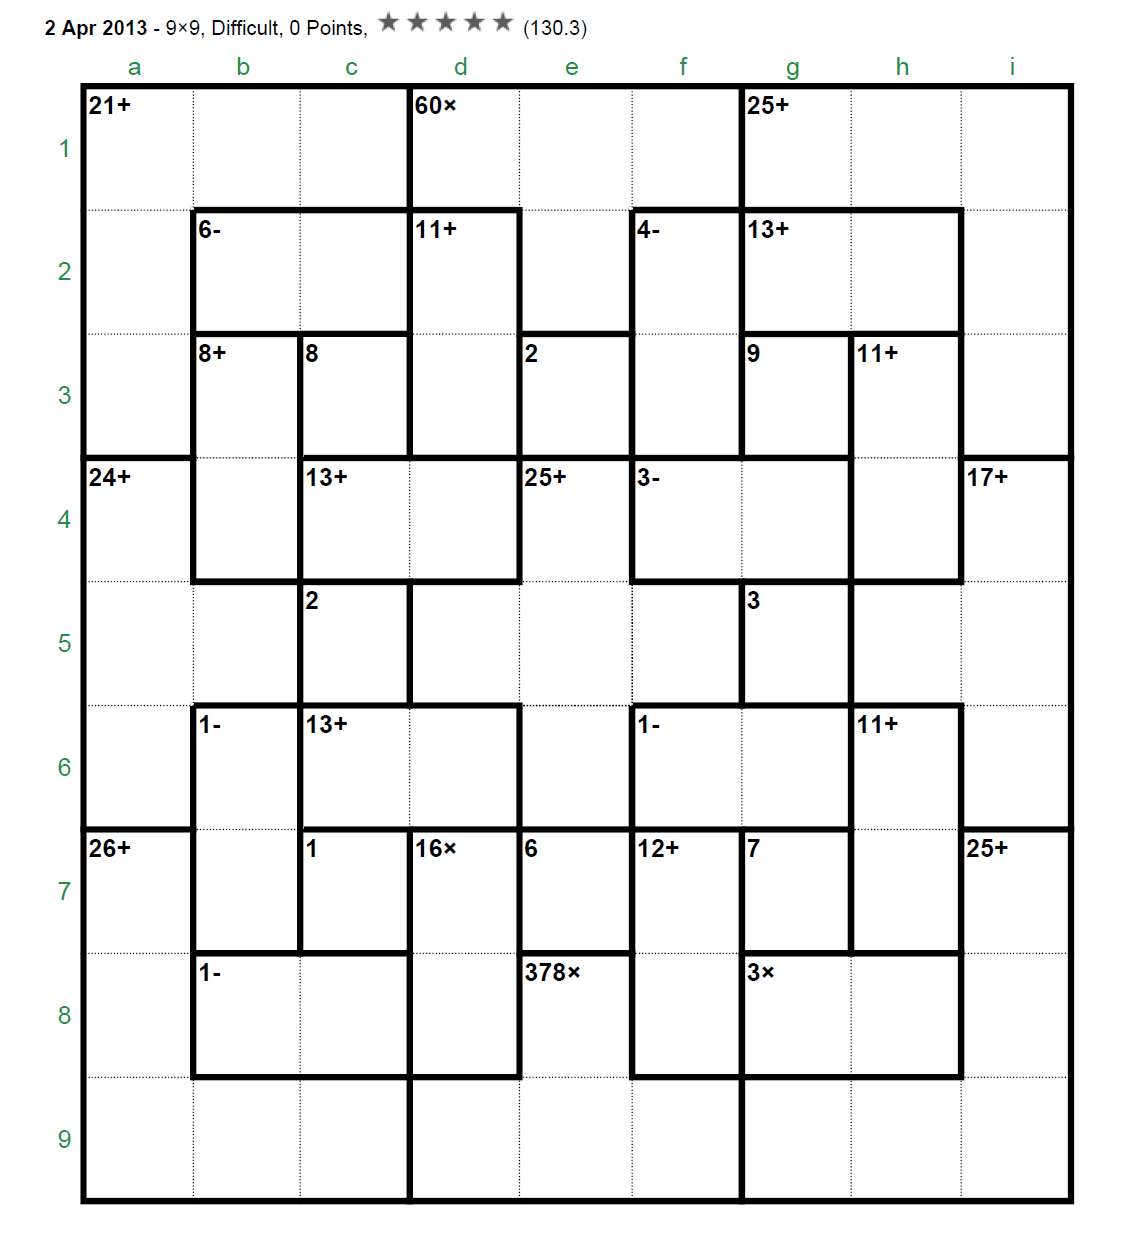 Calcudoku puzzle forum - View topic - The most difficult 9x9